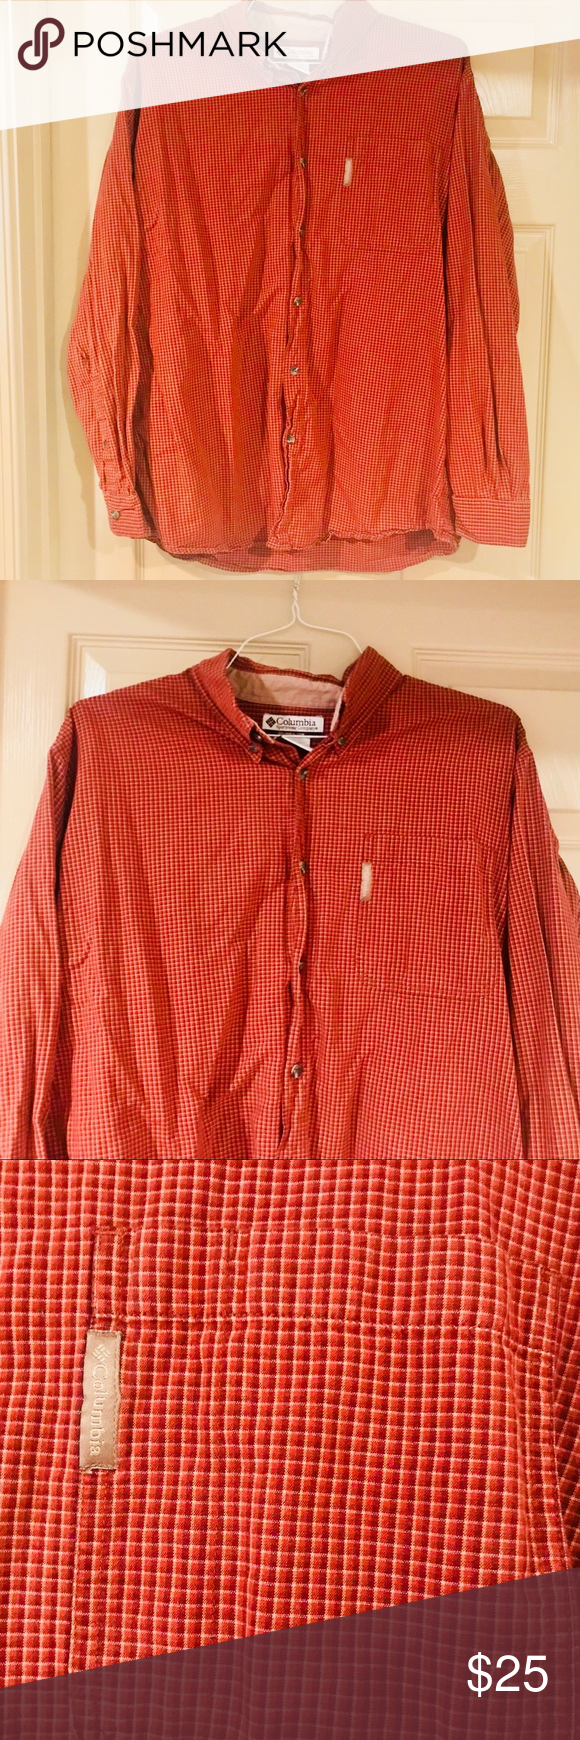 Red flannel 2018  Columbia casual shirt red mens xl in   My Posh Closet